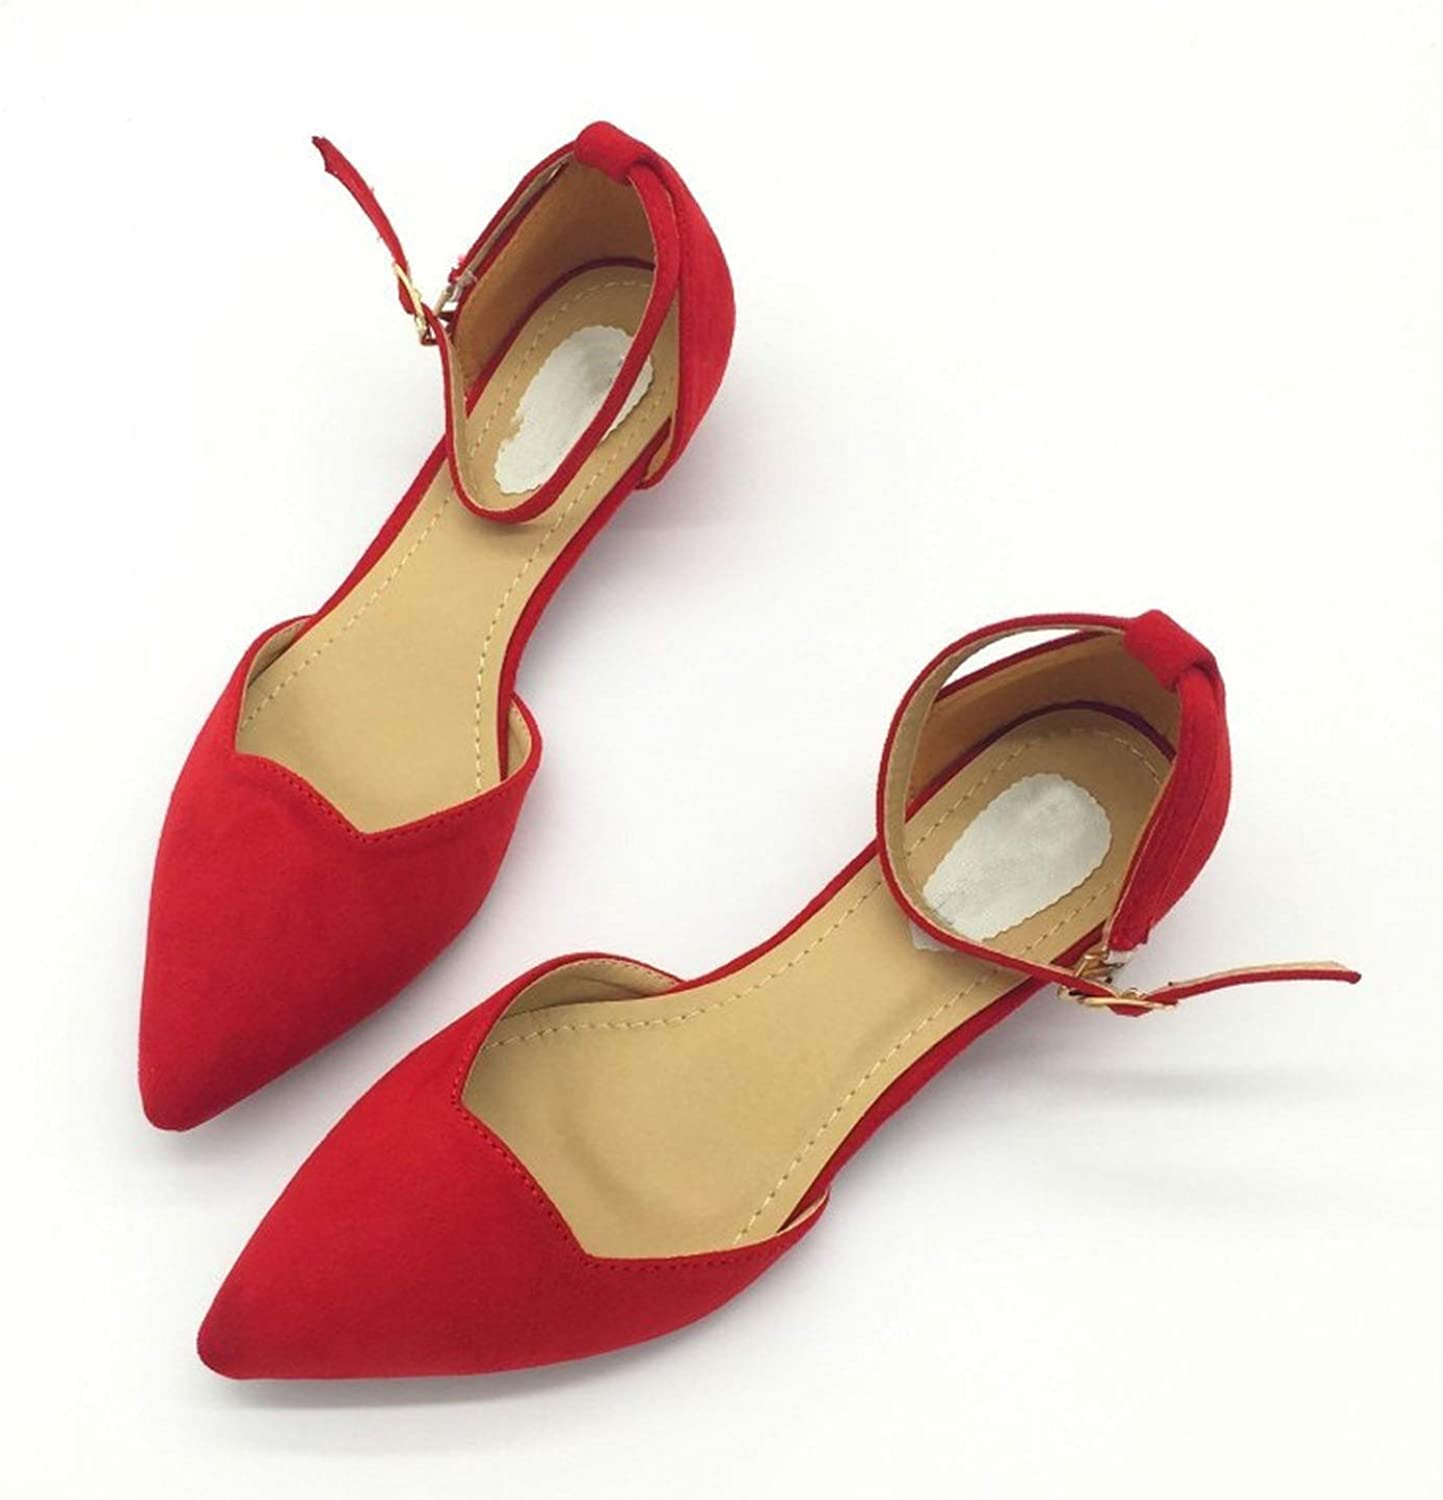 colorful Dream- Sexy Women Buckle Strap Low Heels Pumps Pointed Toe Flock D'Orsay Heels shoes